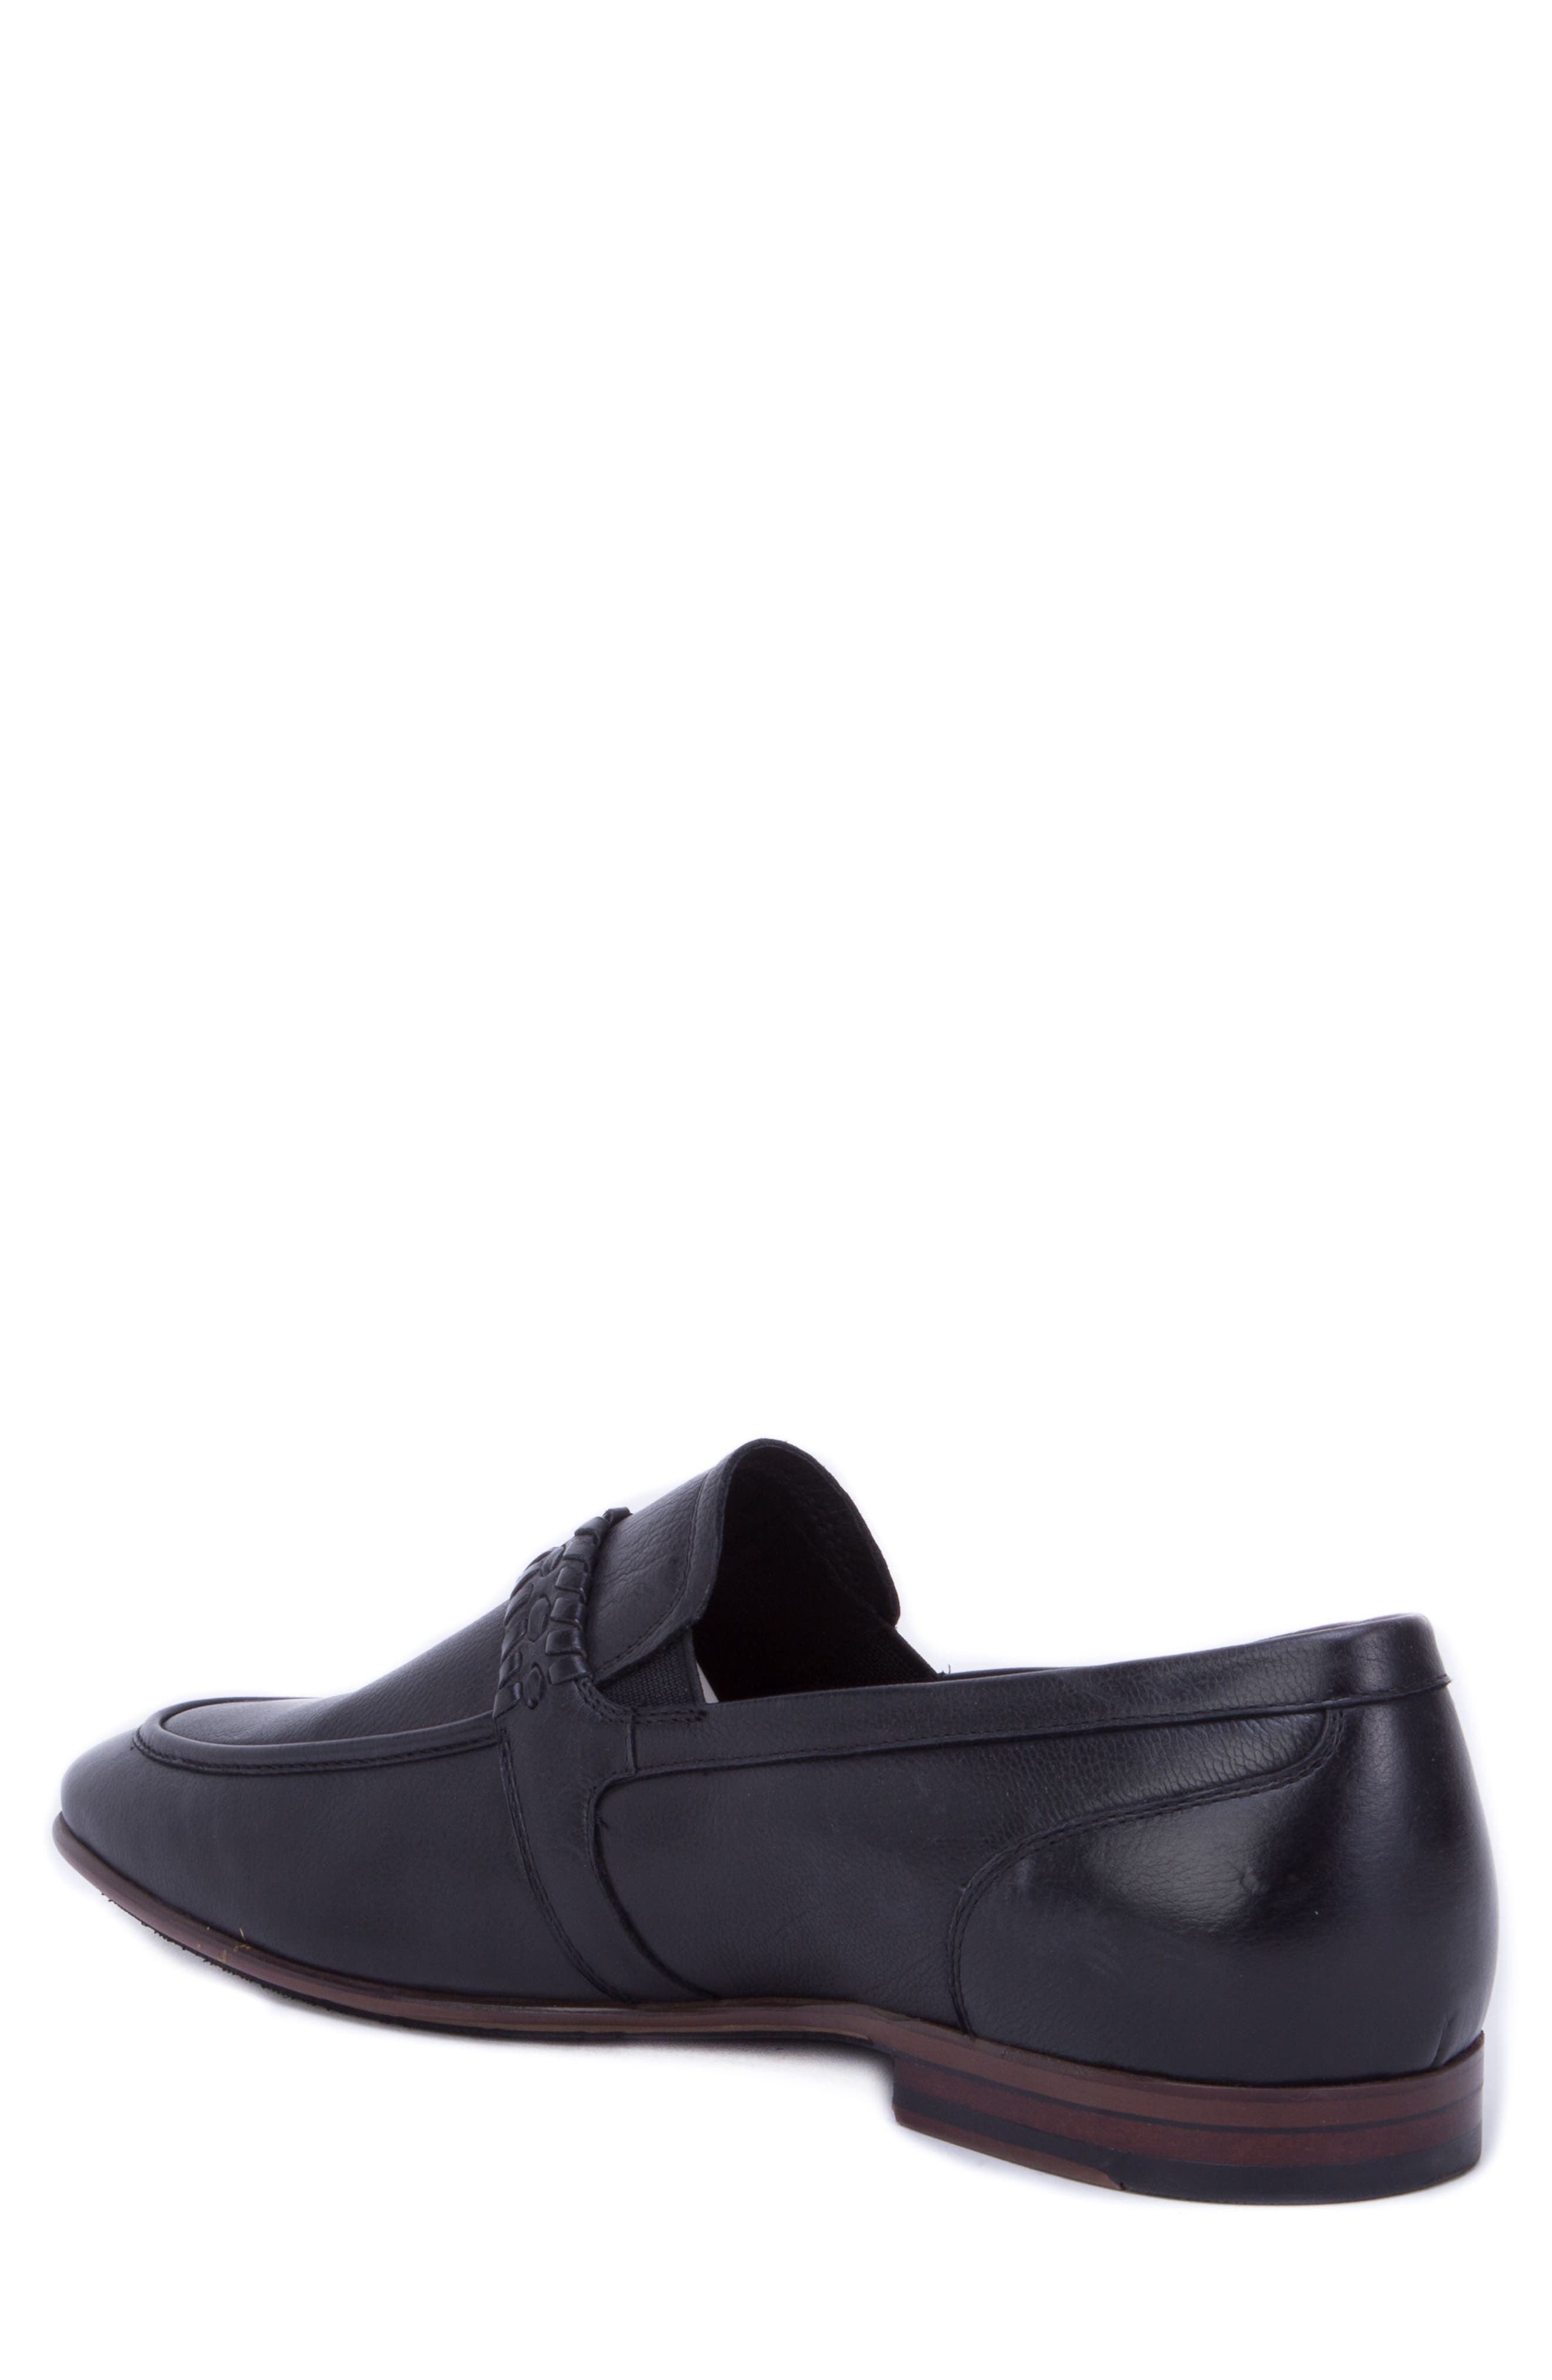 Robinson Whipstitch Apron Toe Loafer,                             Alternate thumbnail 2, color,                             BLACK LEATHER